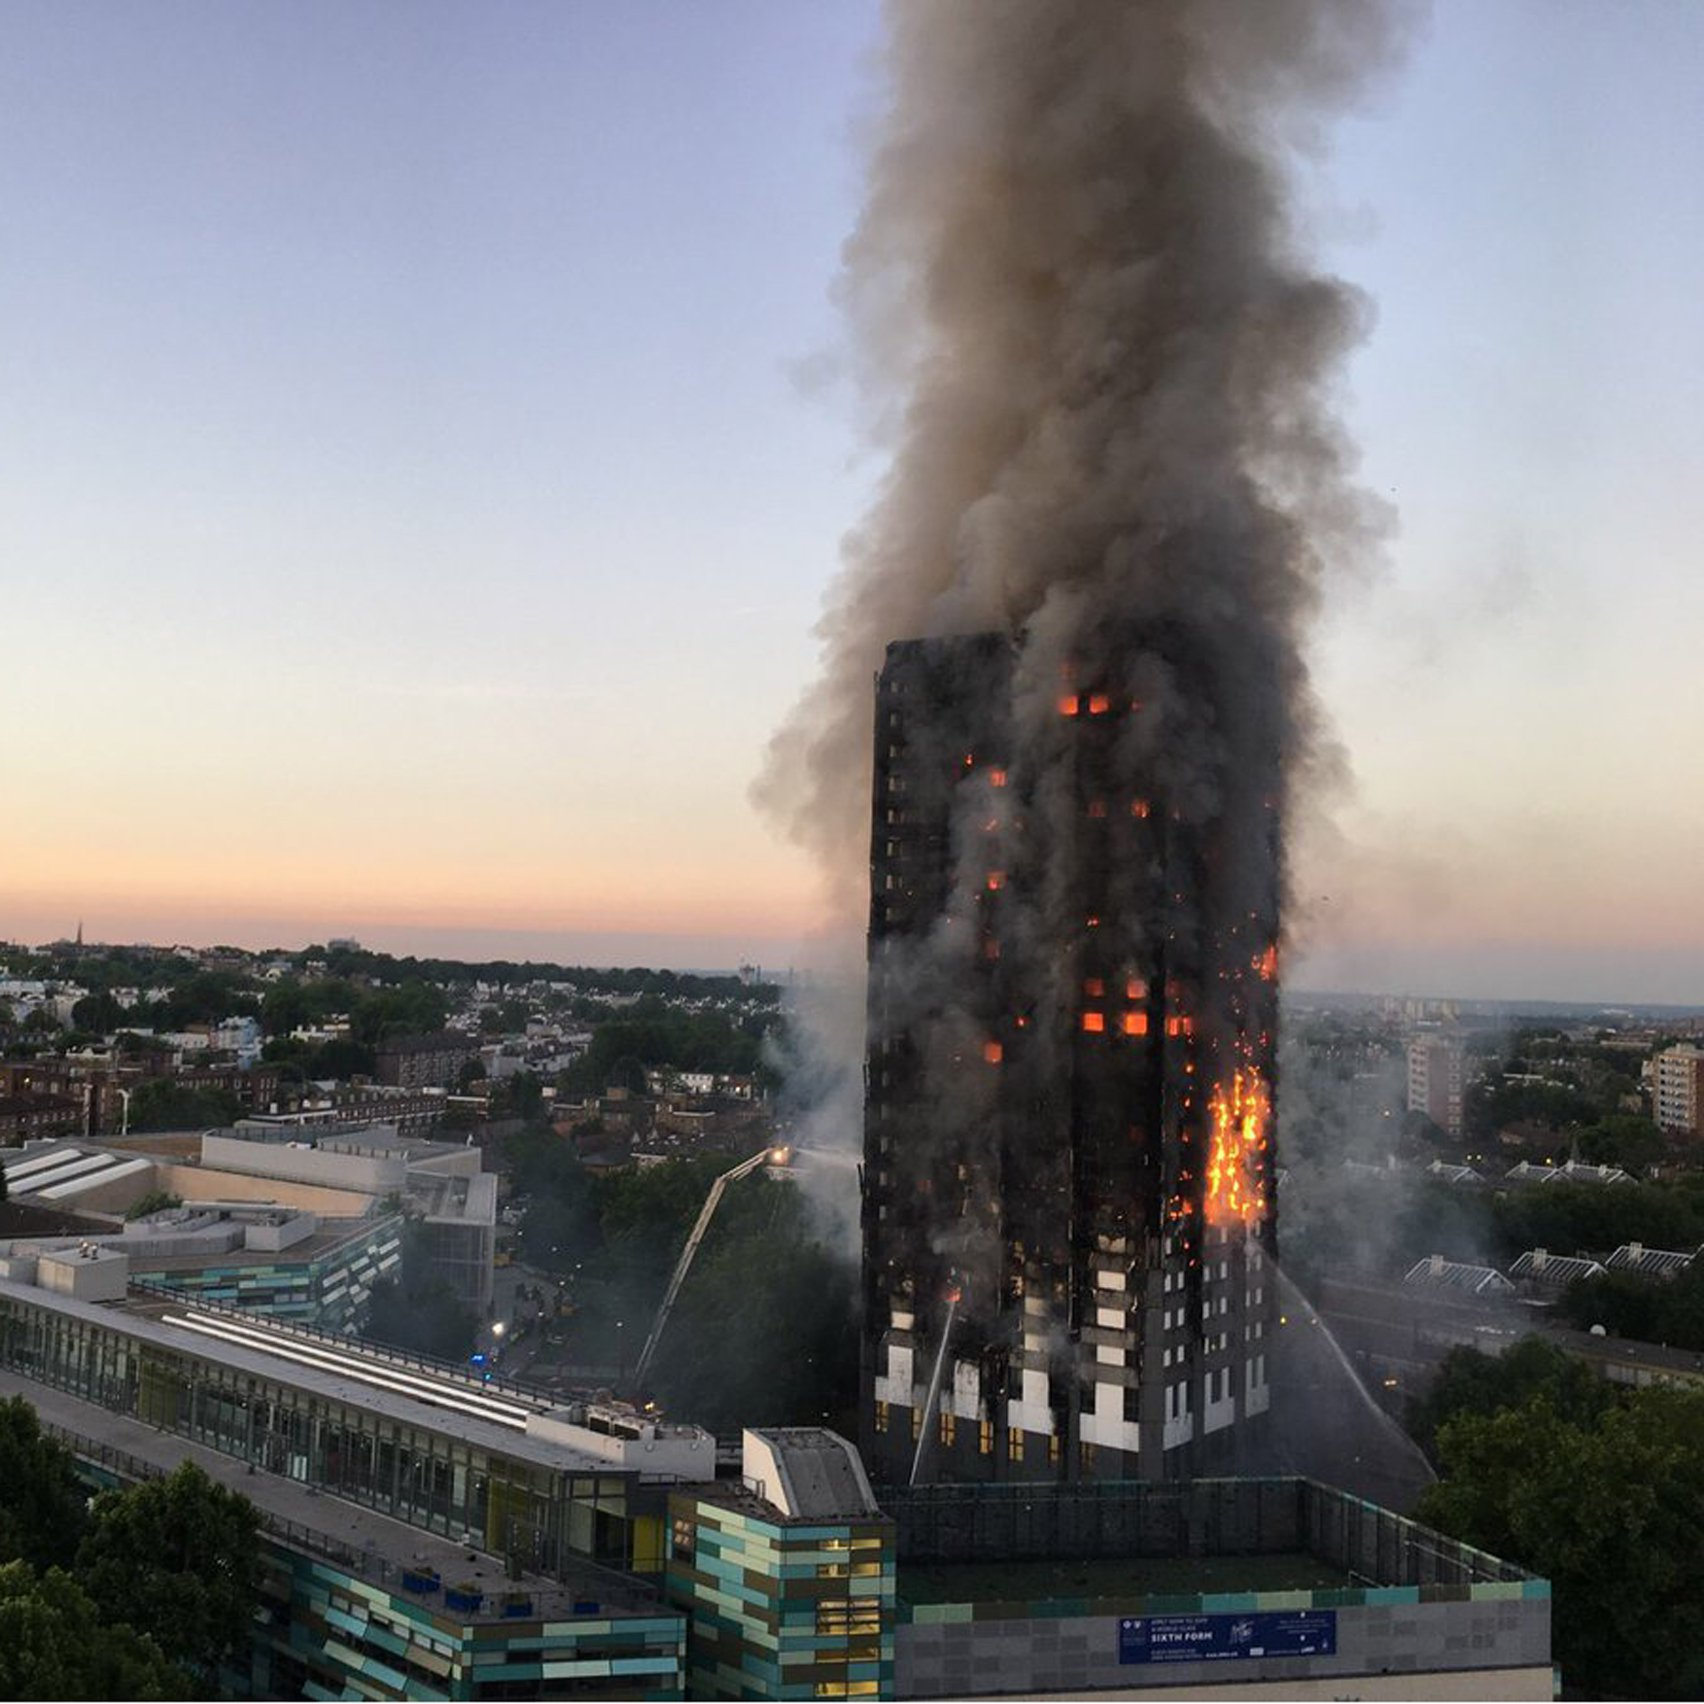 Theresa May orders public inquiry into Grenfell Tower fire as renovations blamed